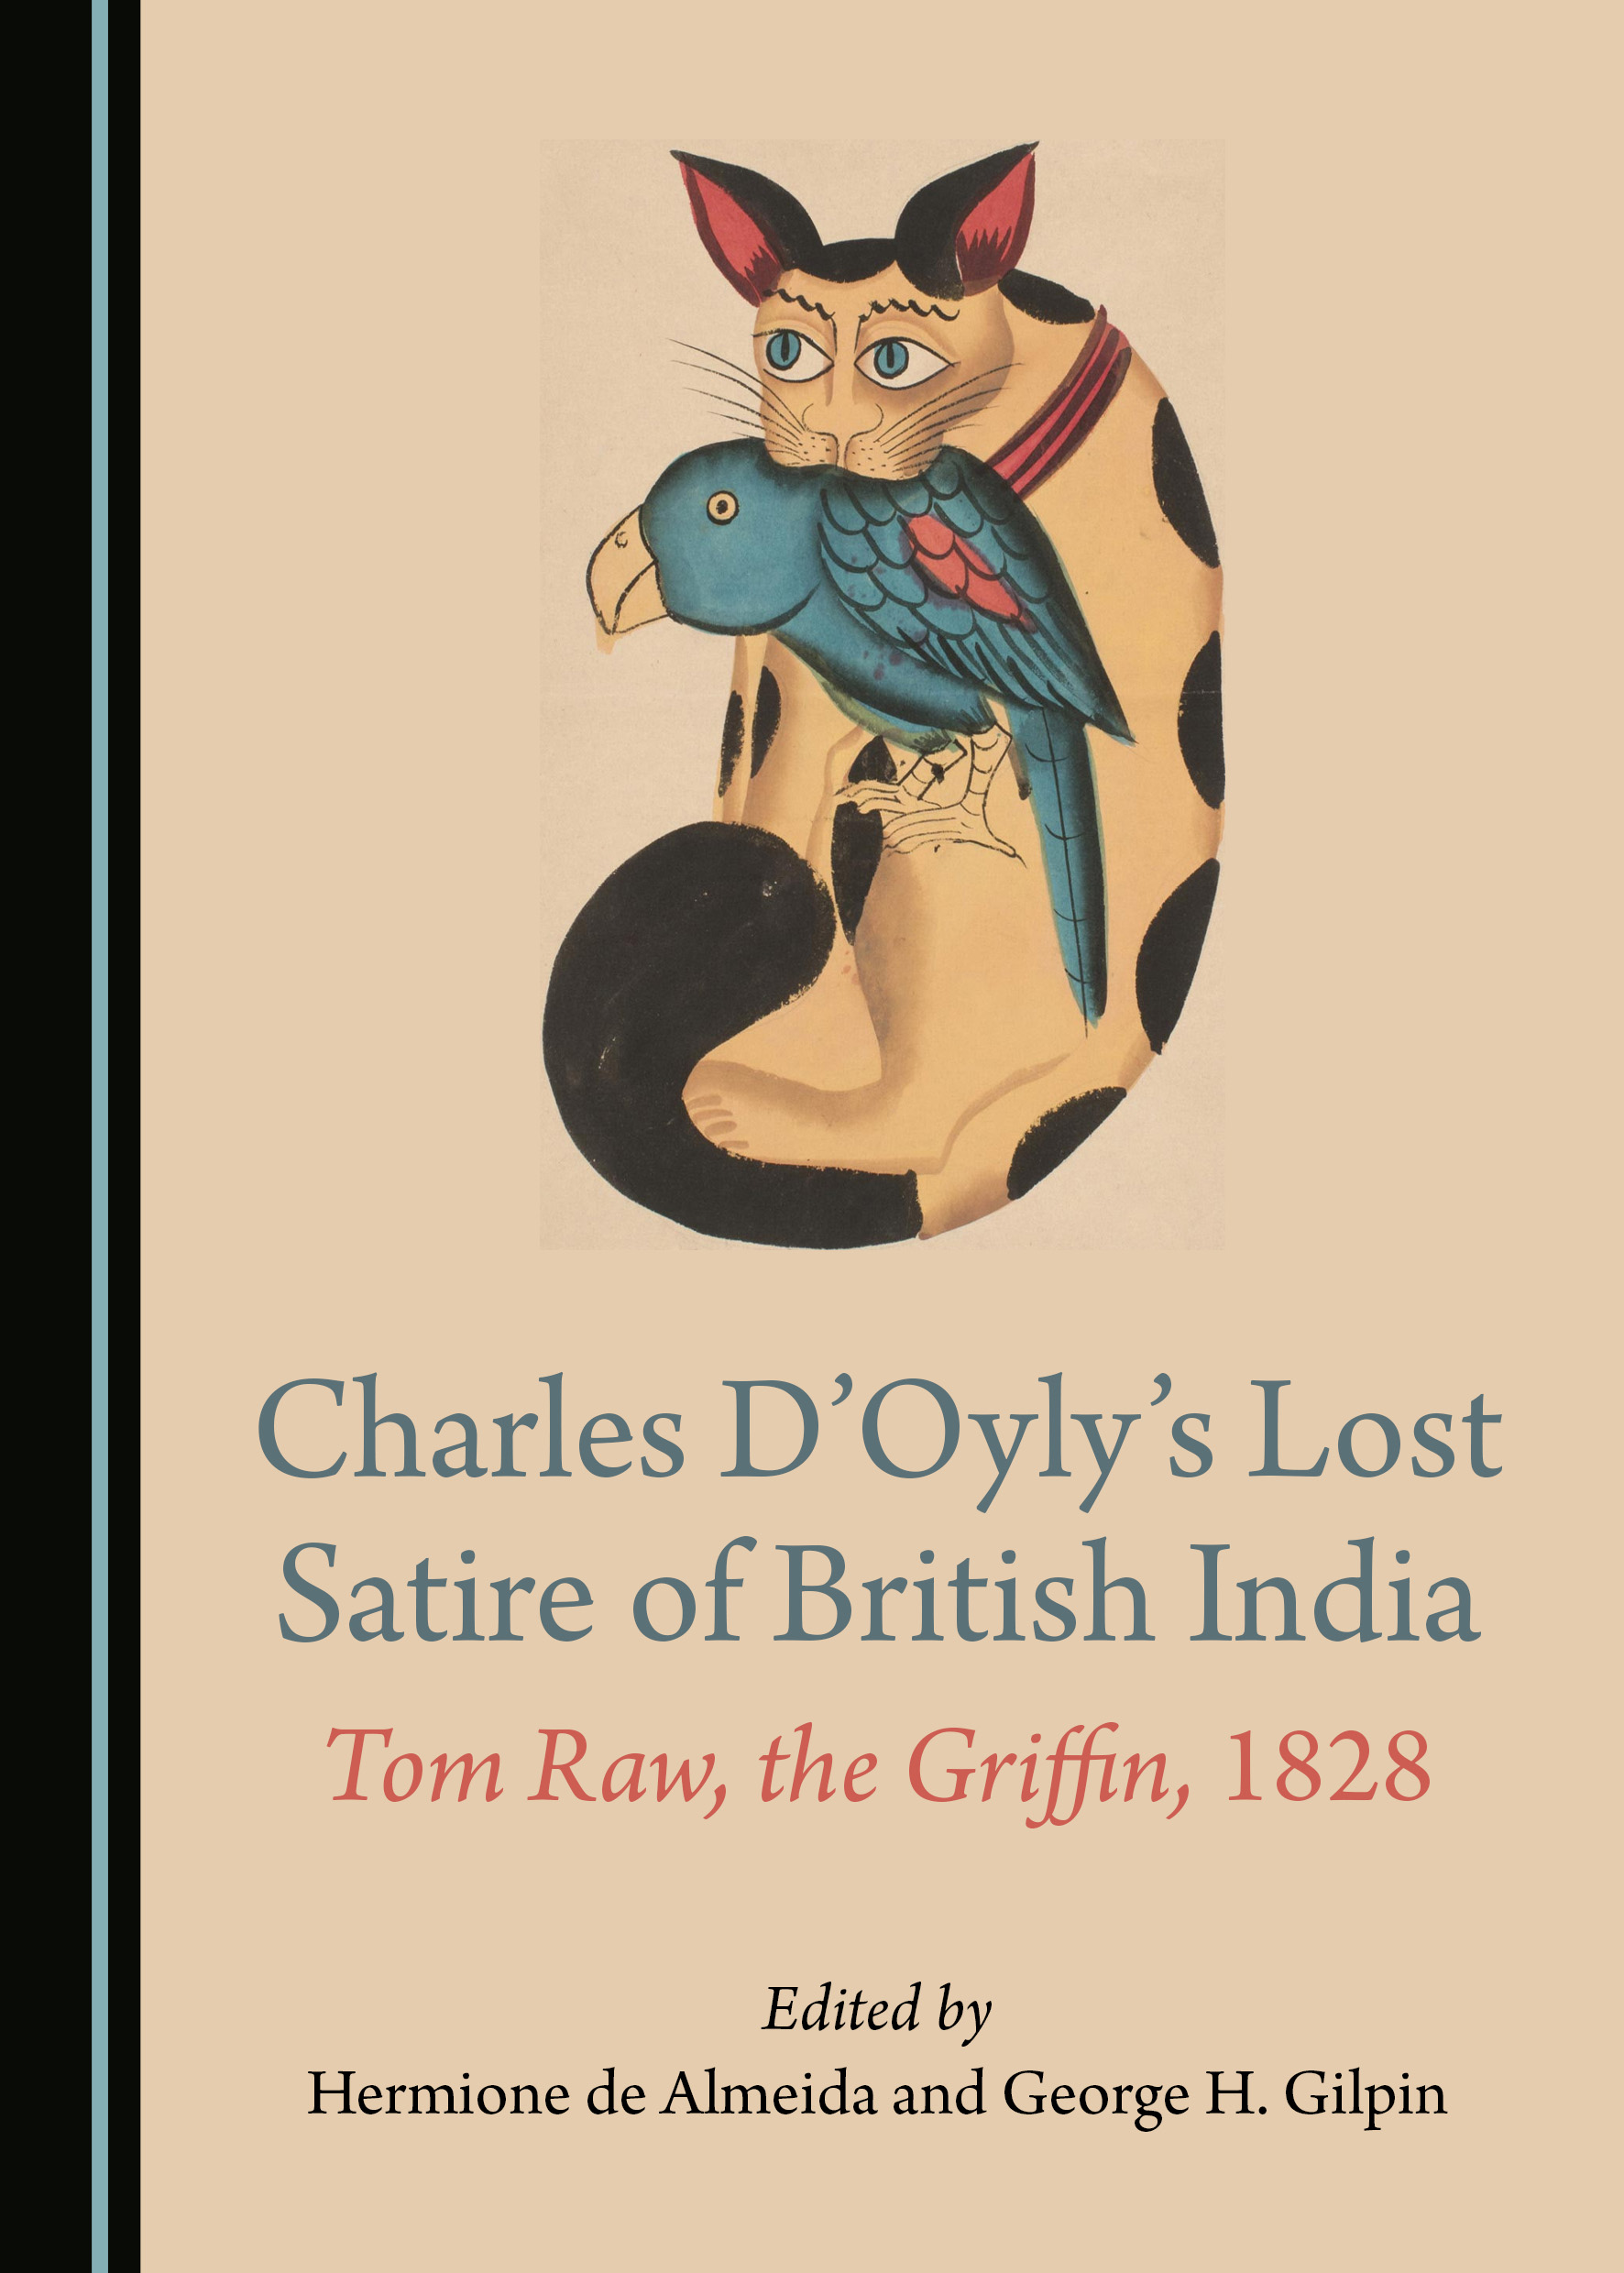 Charles D'Oyly's Lost Satire of British India: Tom Raw, the Griffin, 1828